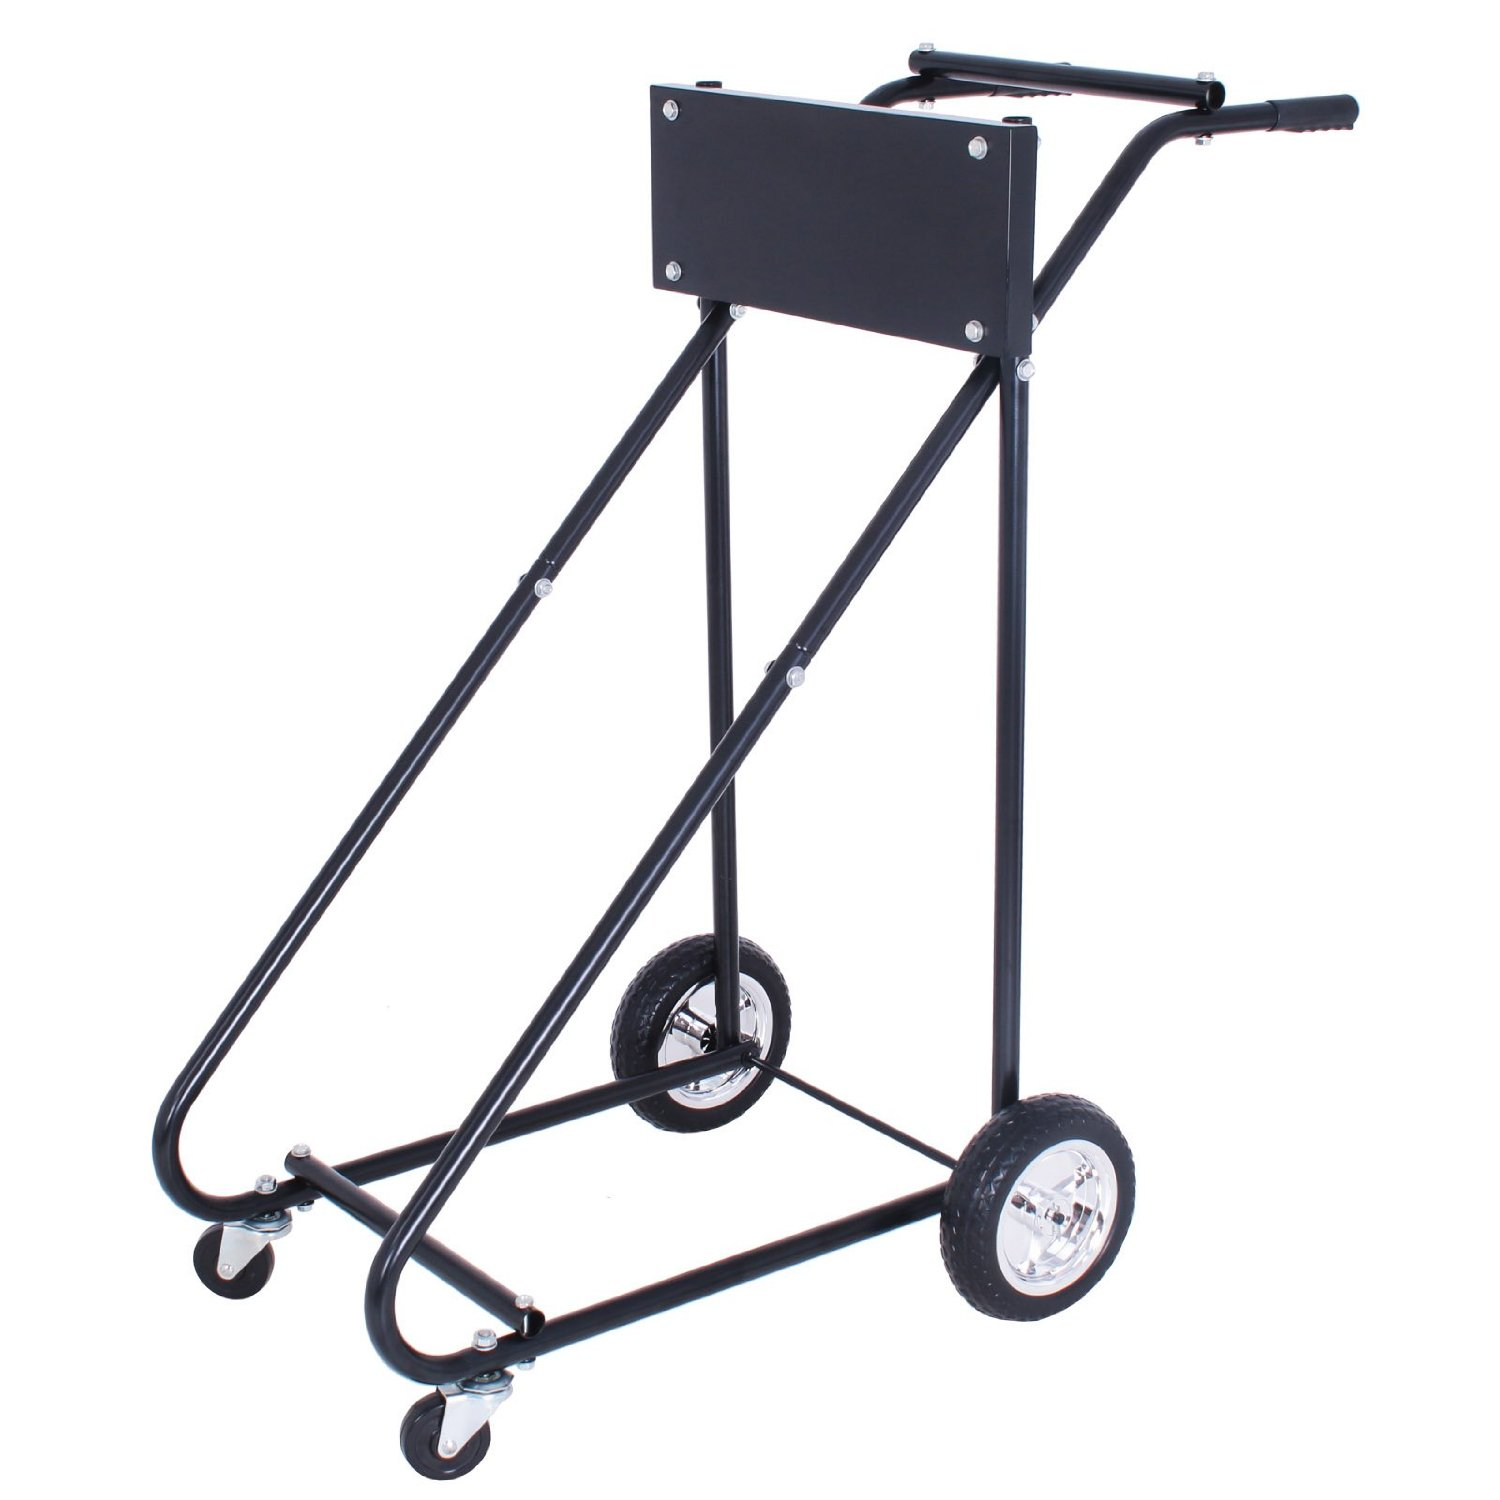 Cheap Outboard Motor Stand, find Outboard Motor Stand deals on line